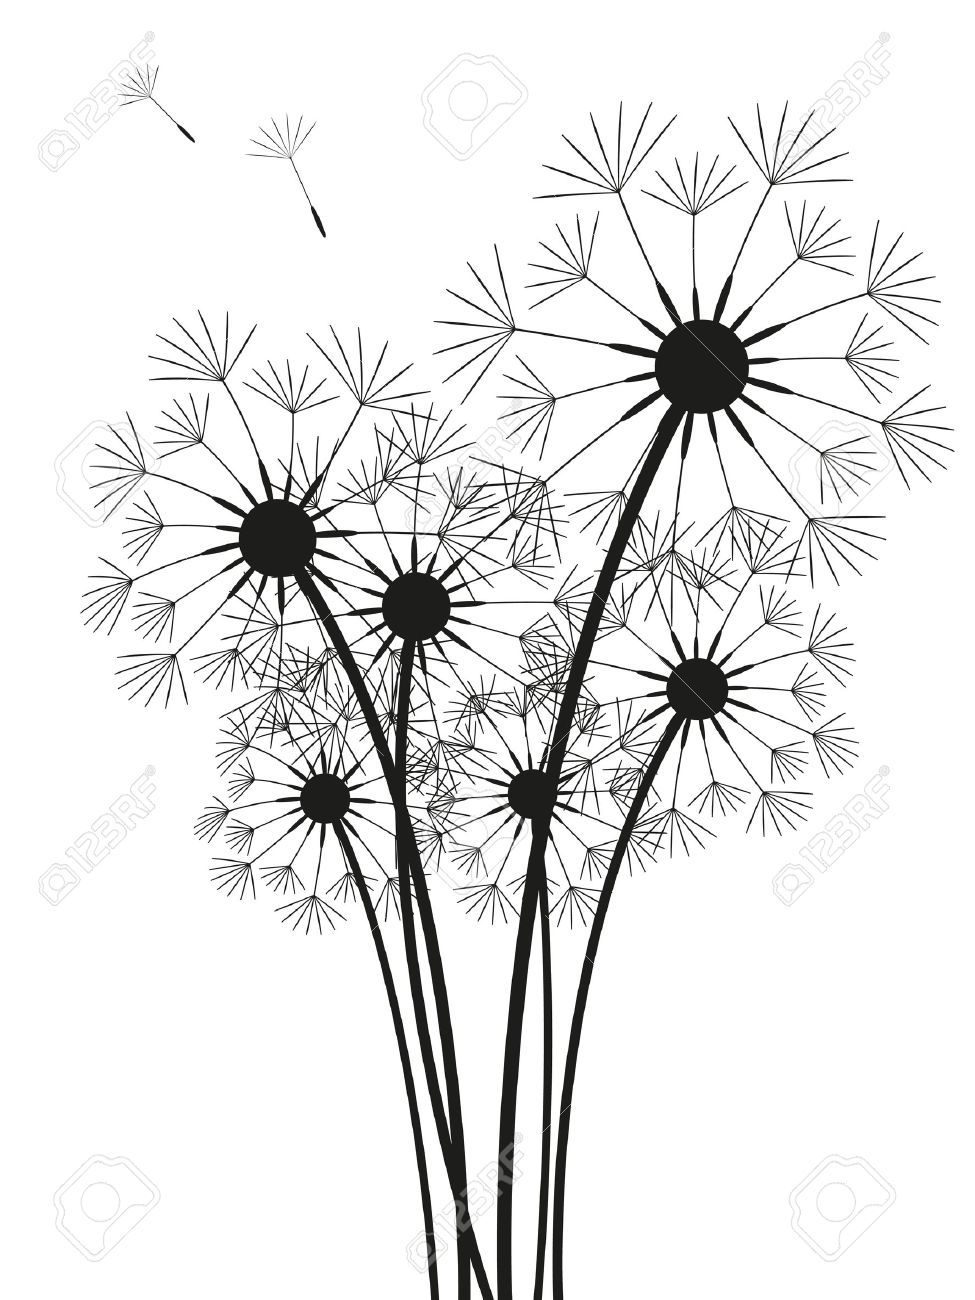 Dandelions Silhouette Isolated On White Dandelion Art Silhouette Art Dandelion